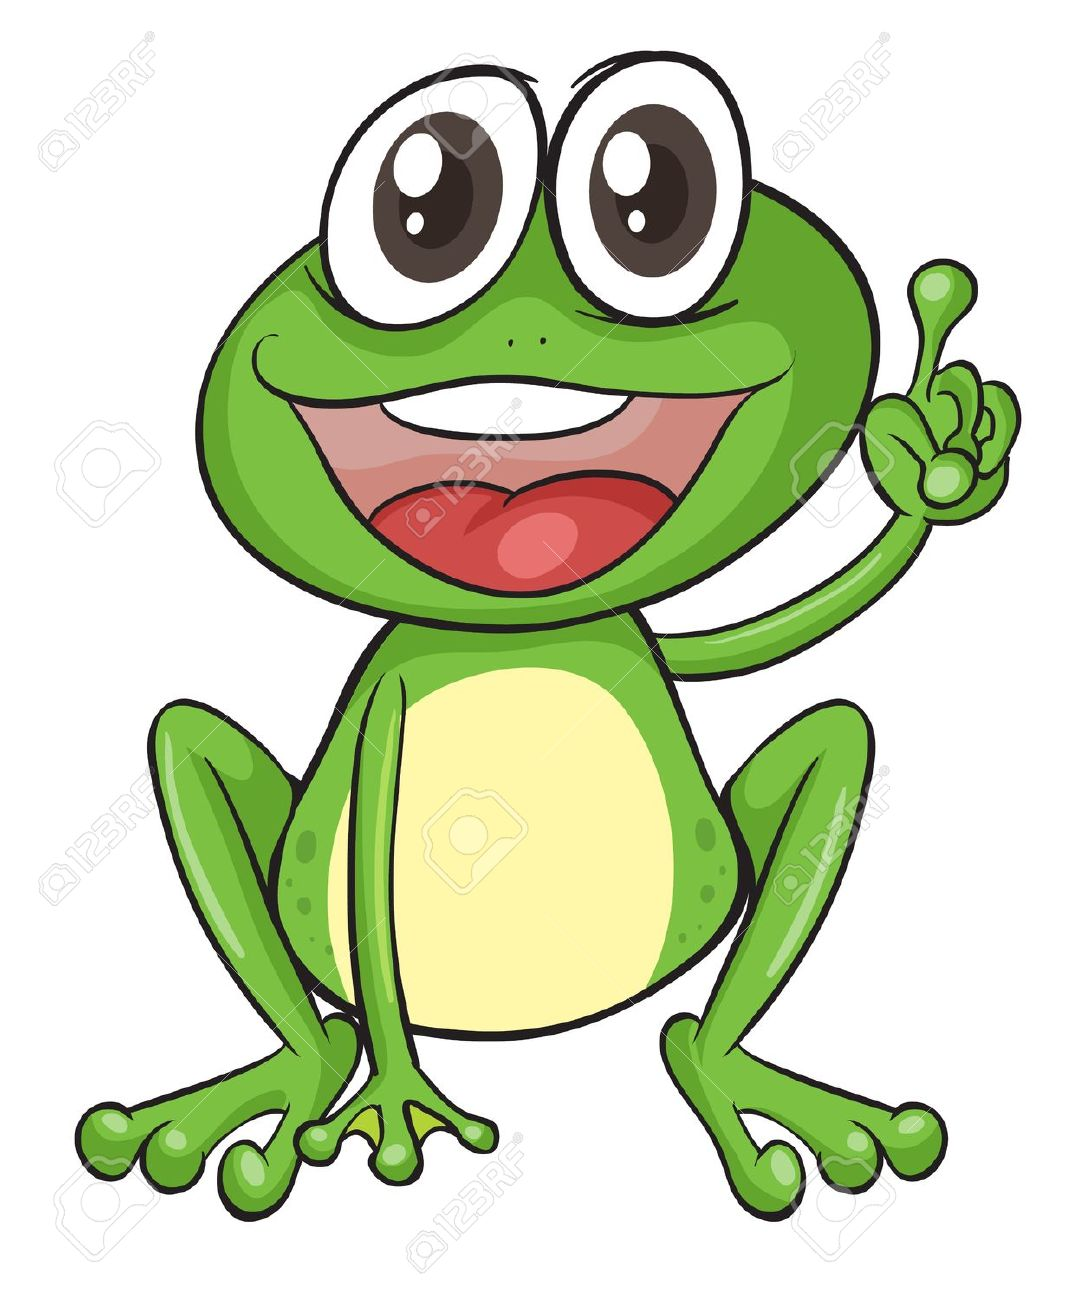 Free frog clip art drawings and colorful images